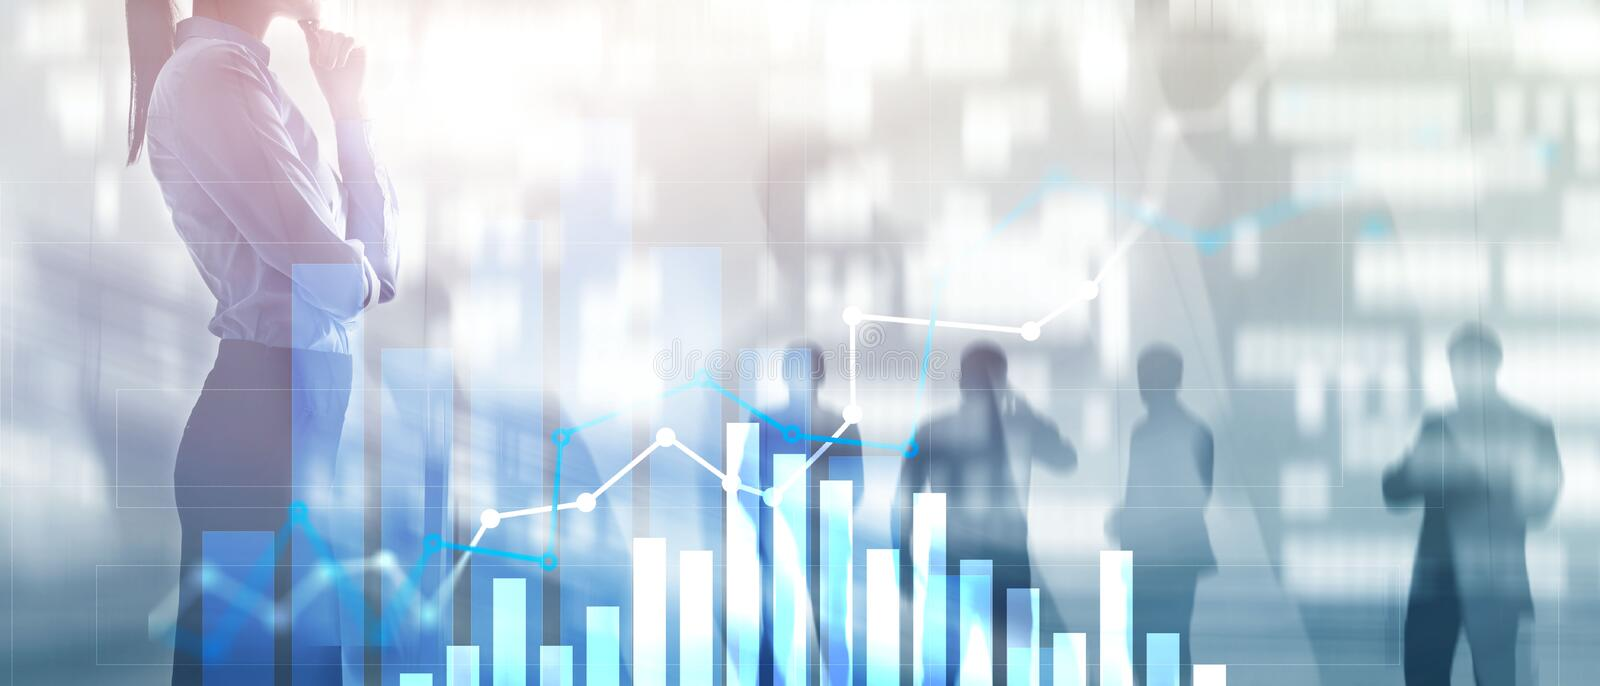 Financial growth graph. Sales increase, marketing strategy concept. stock images